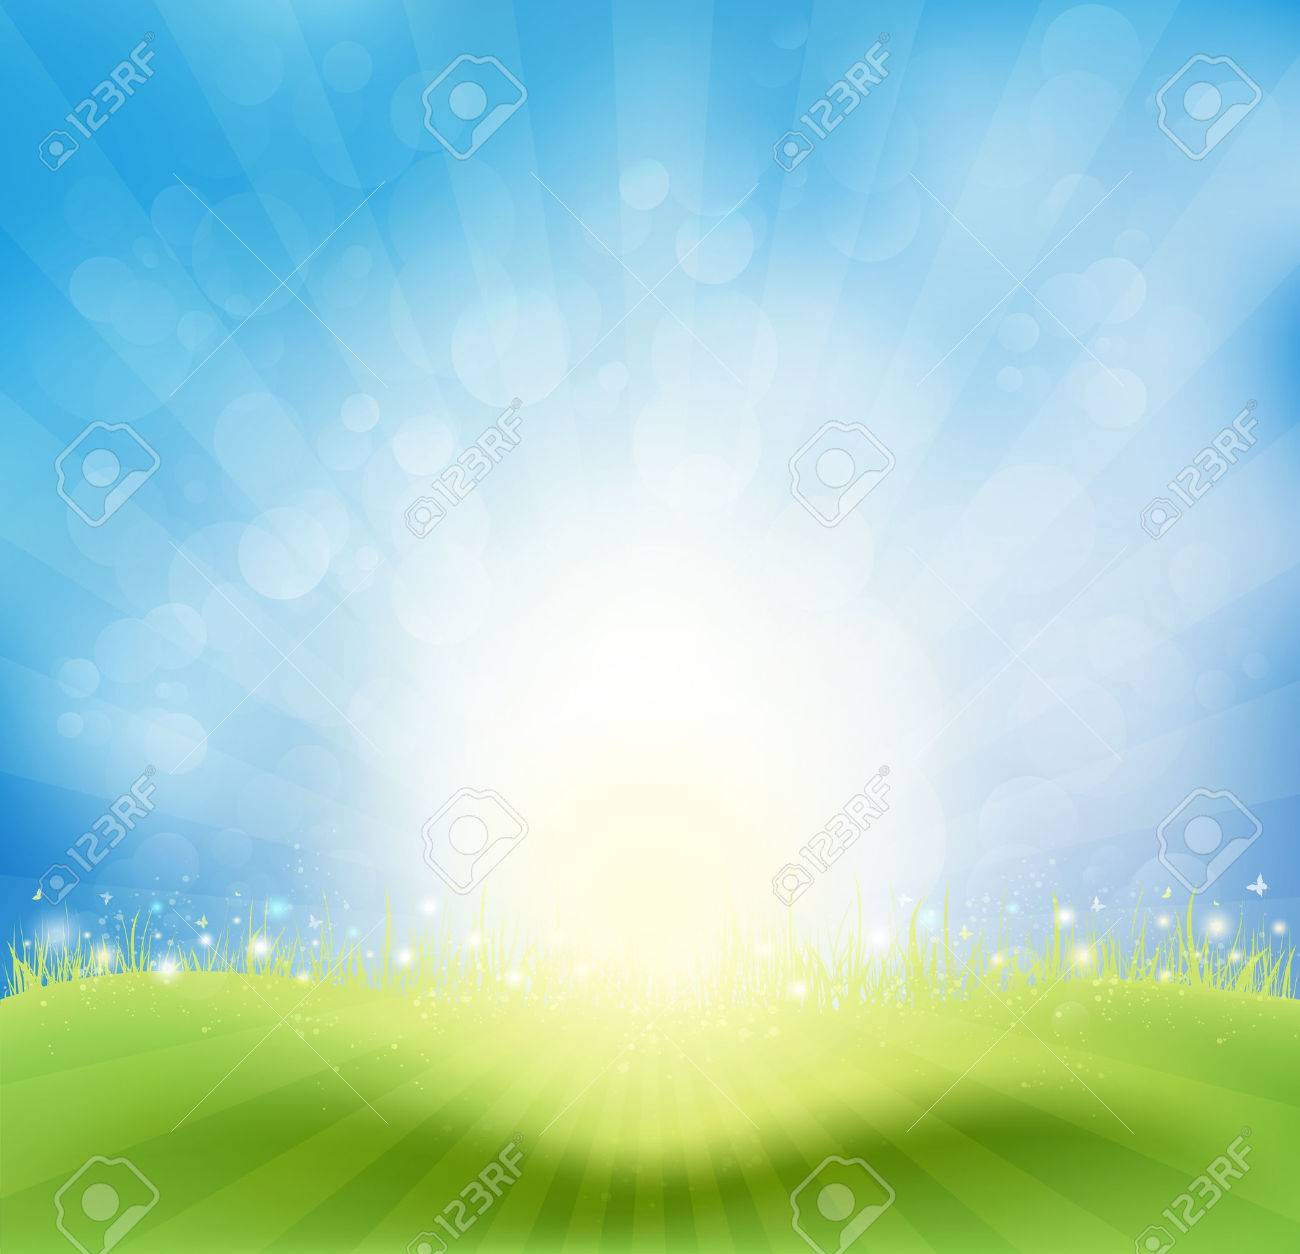 Spring Background With Sky, Sun Rays And Butterflies - 26592696